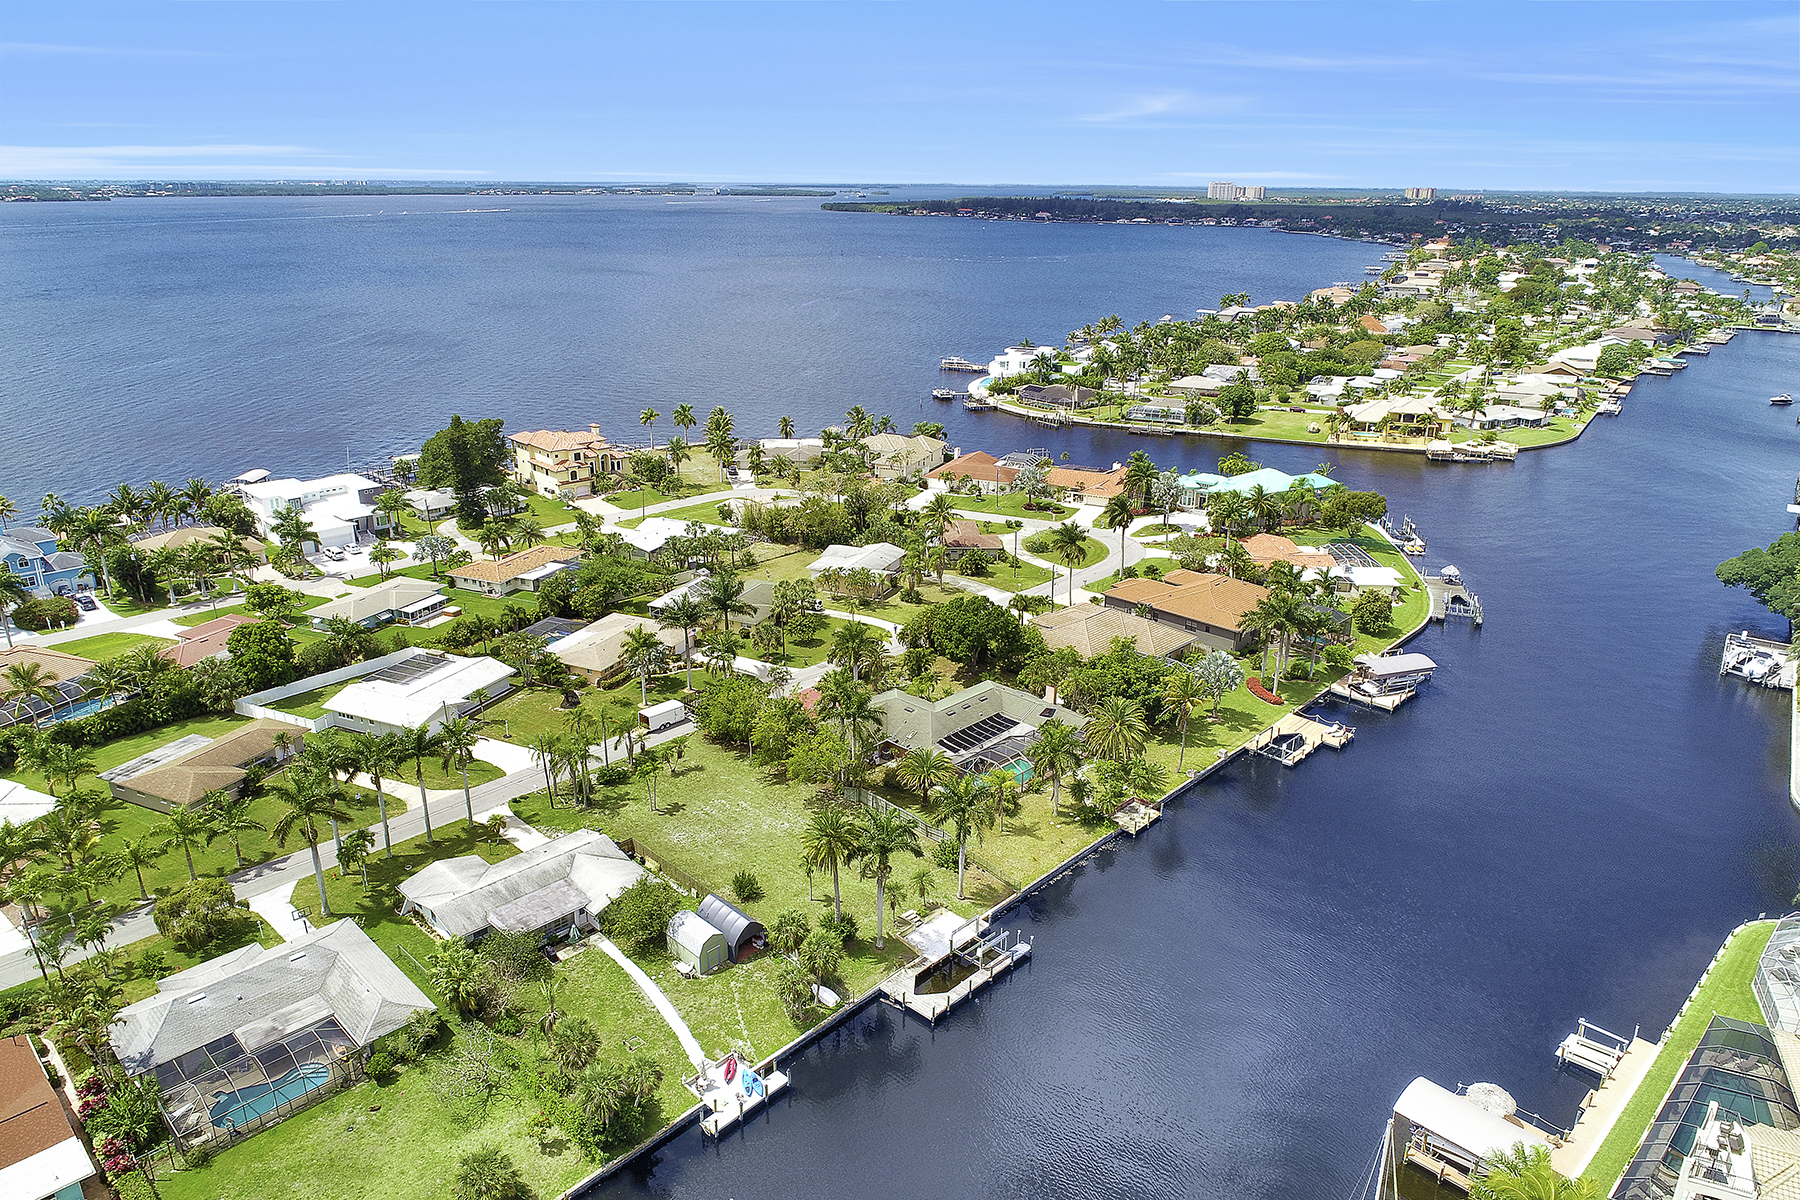 Land for Sale at CAPE CORAL 931 Dolphin Dr Cape Coral, Florida 33904 United States